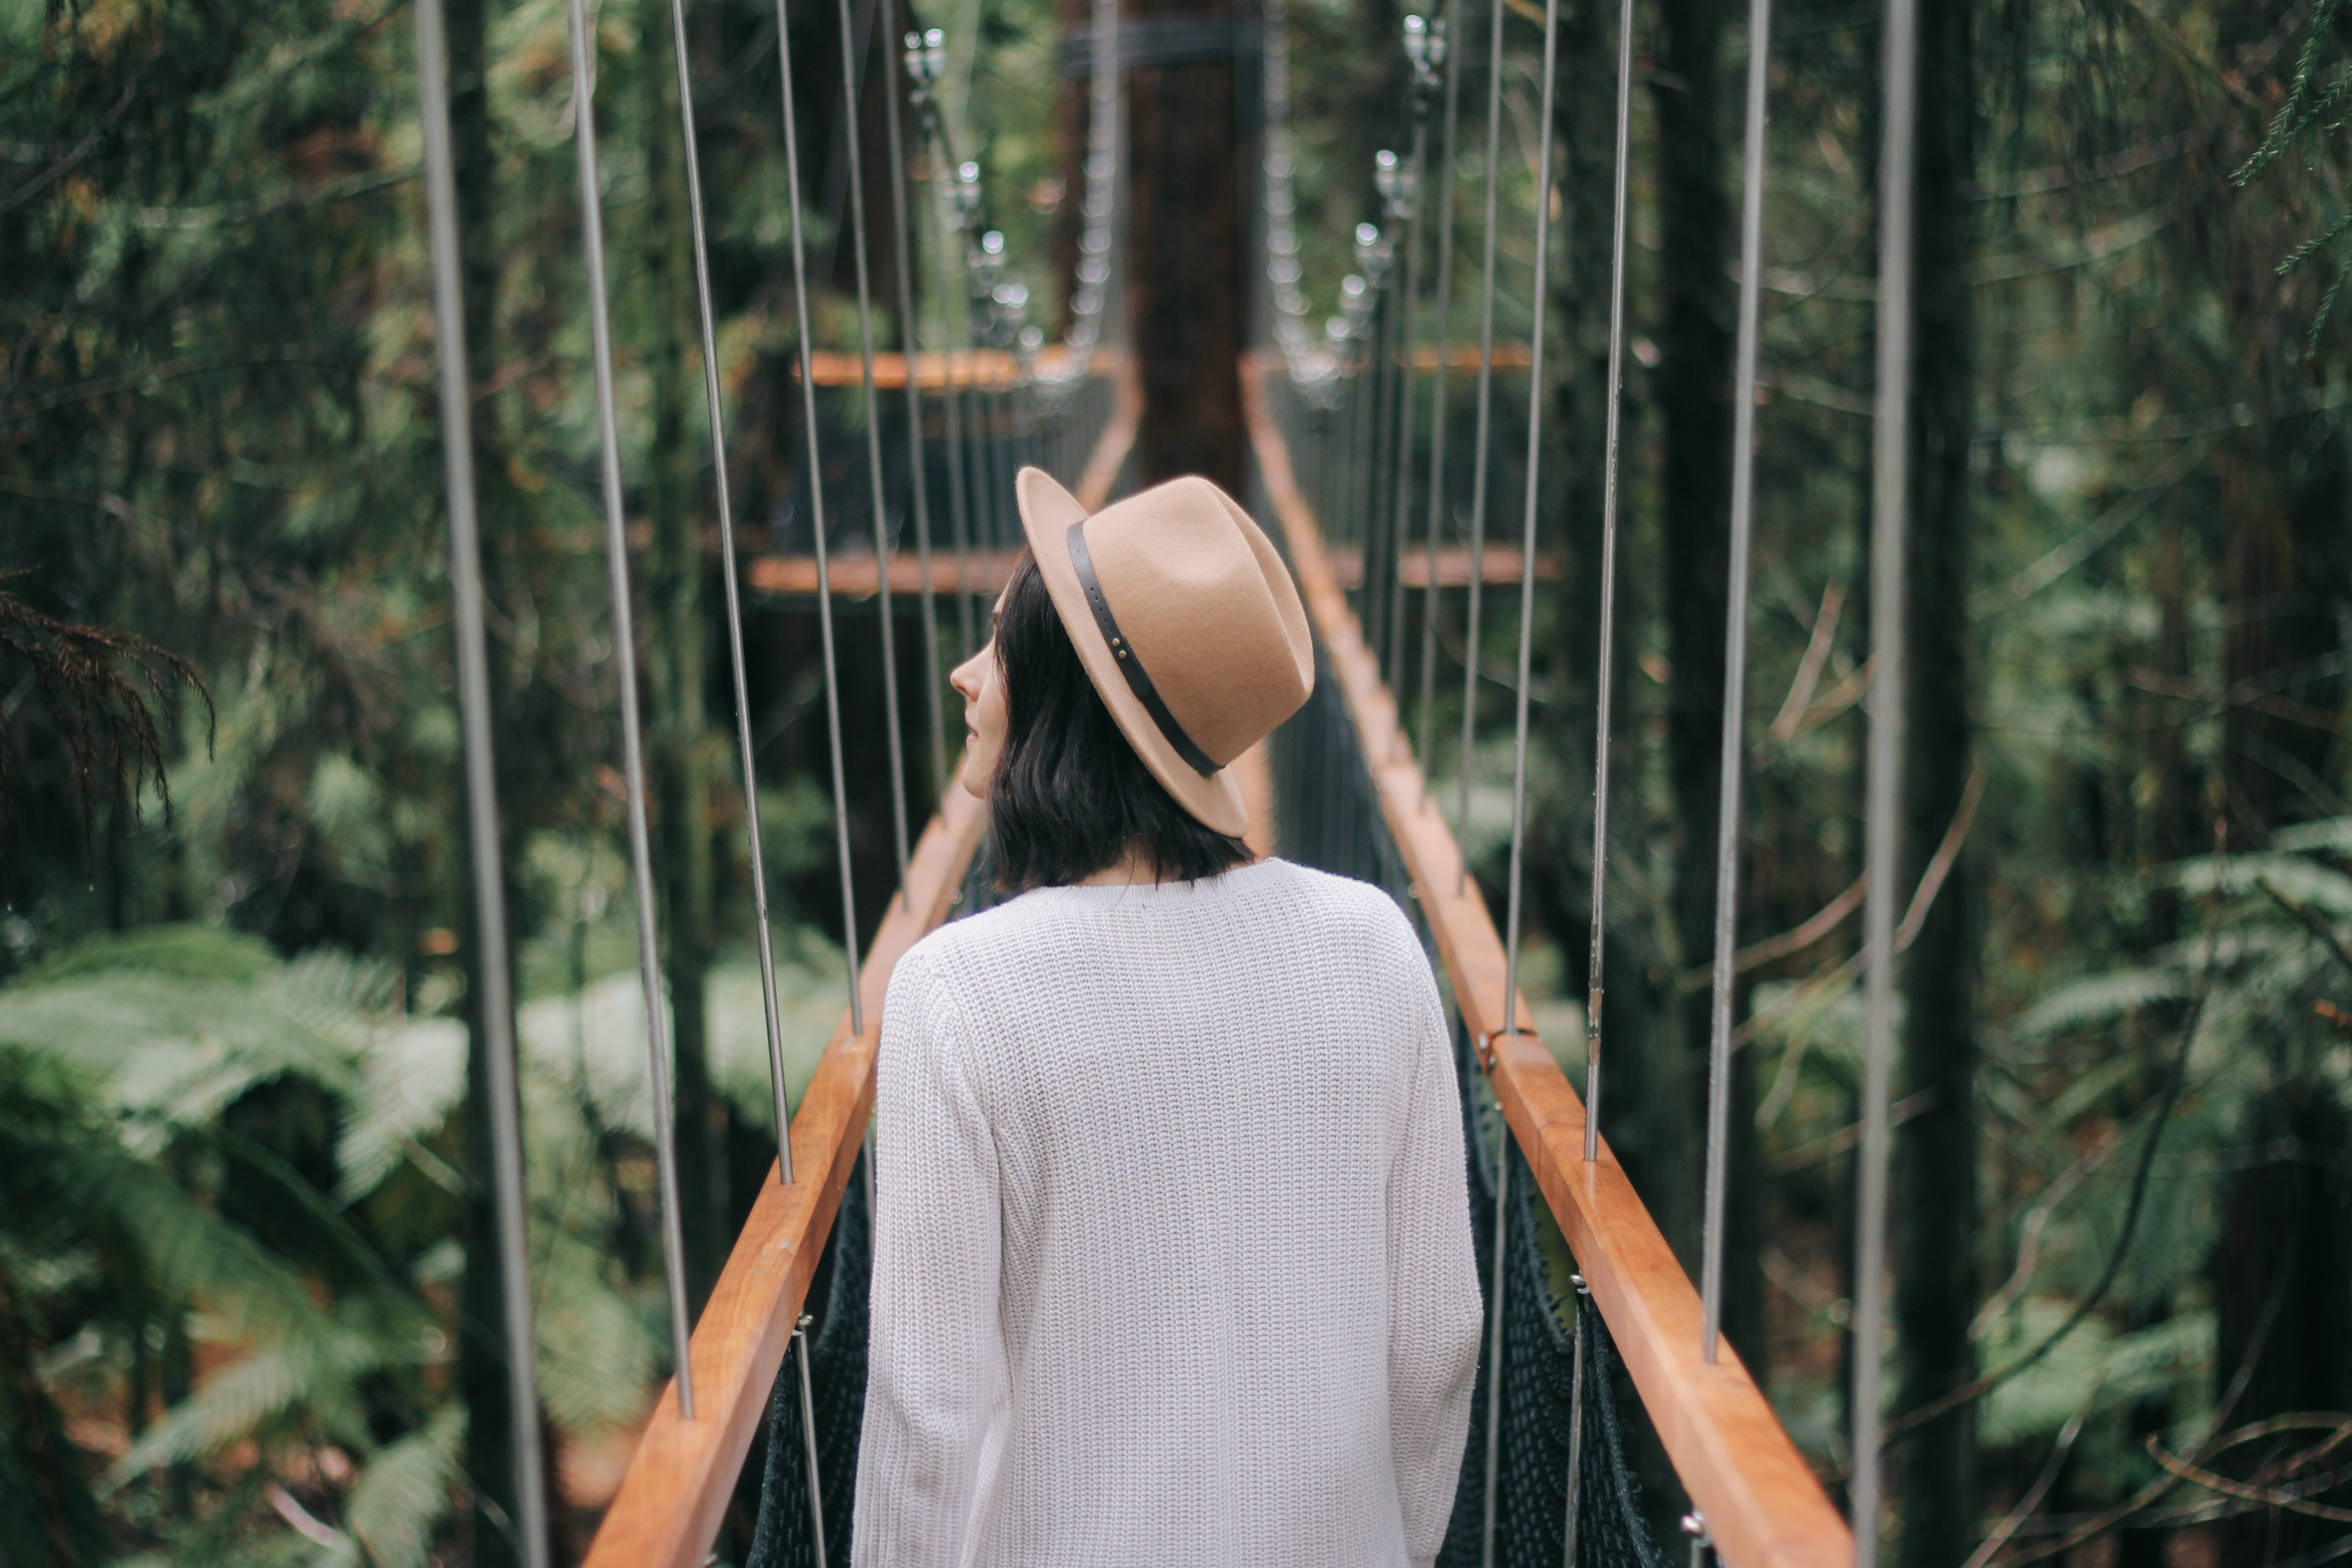 A woman wearing a hat and a sweater walking across a suspension bridge in the Redwoods forest